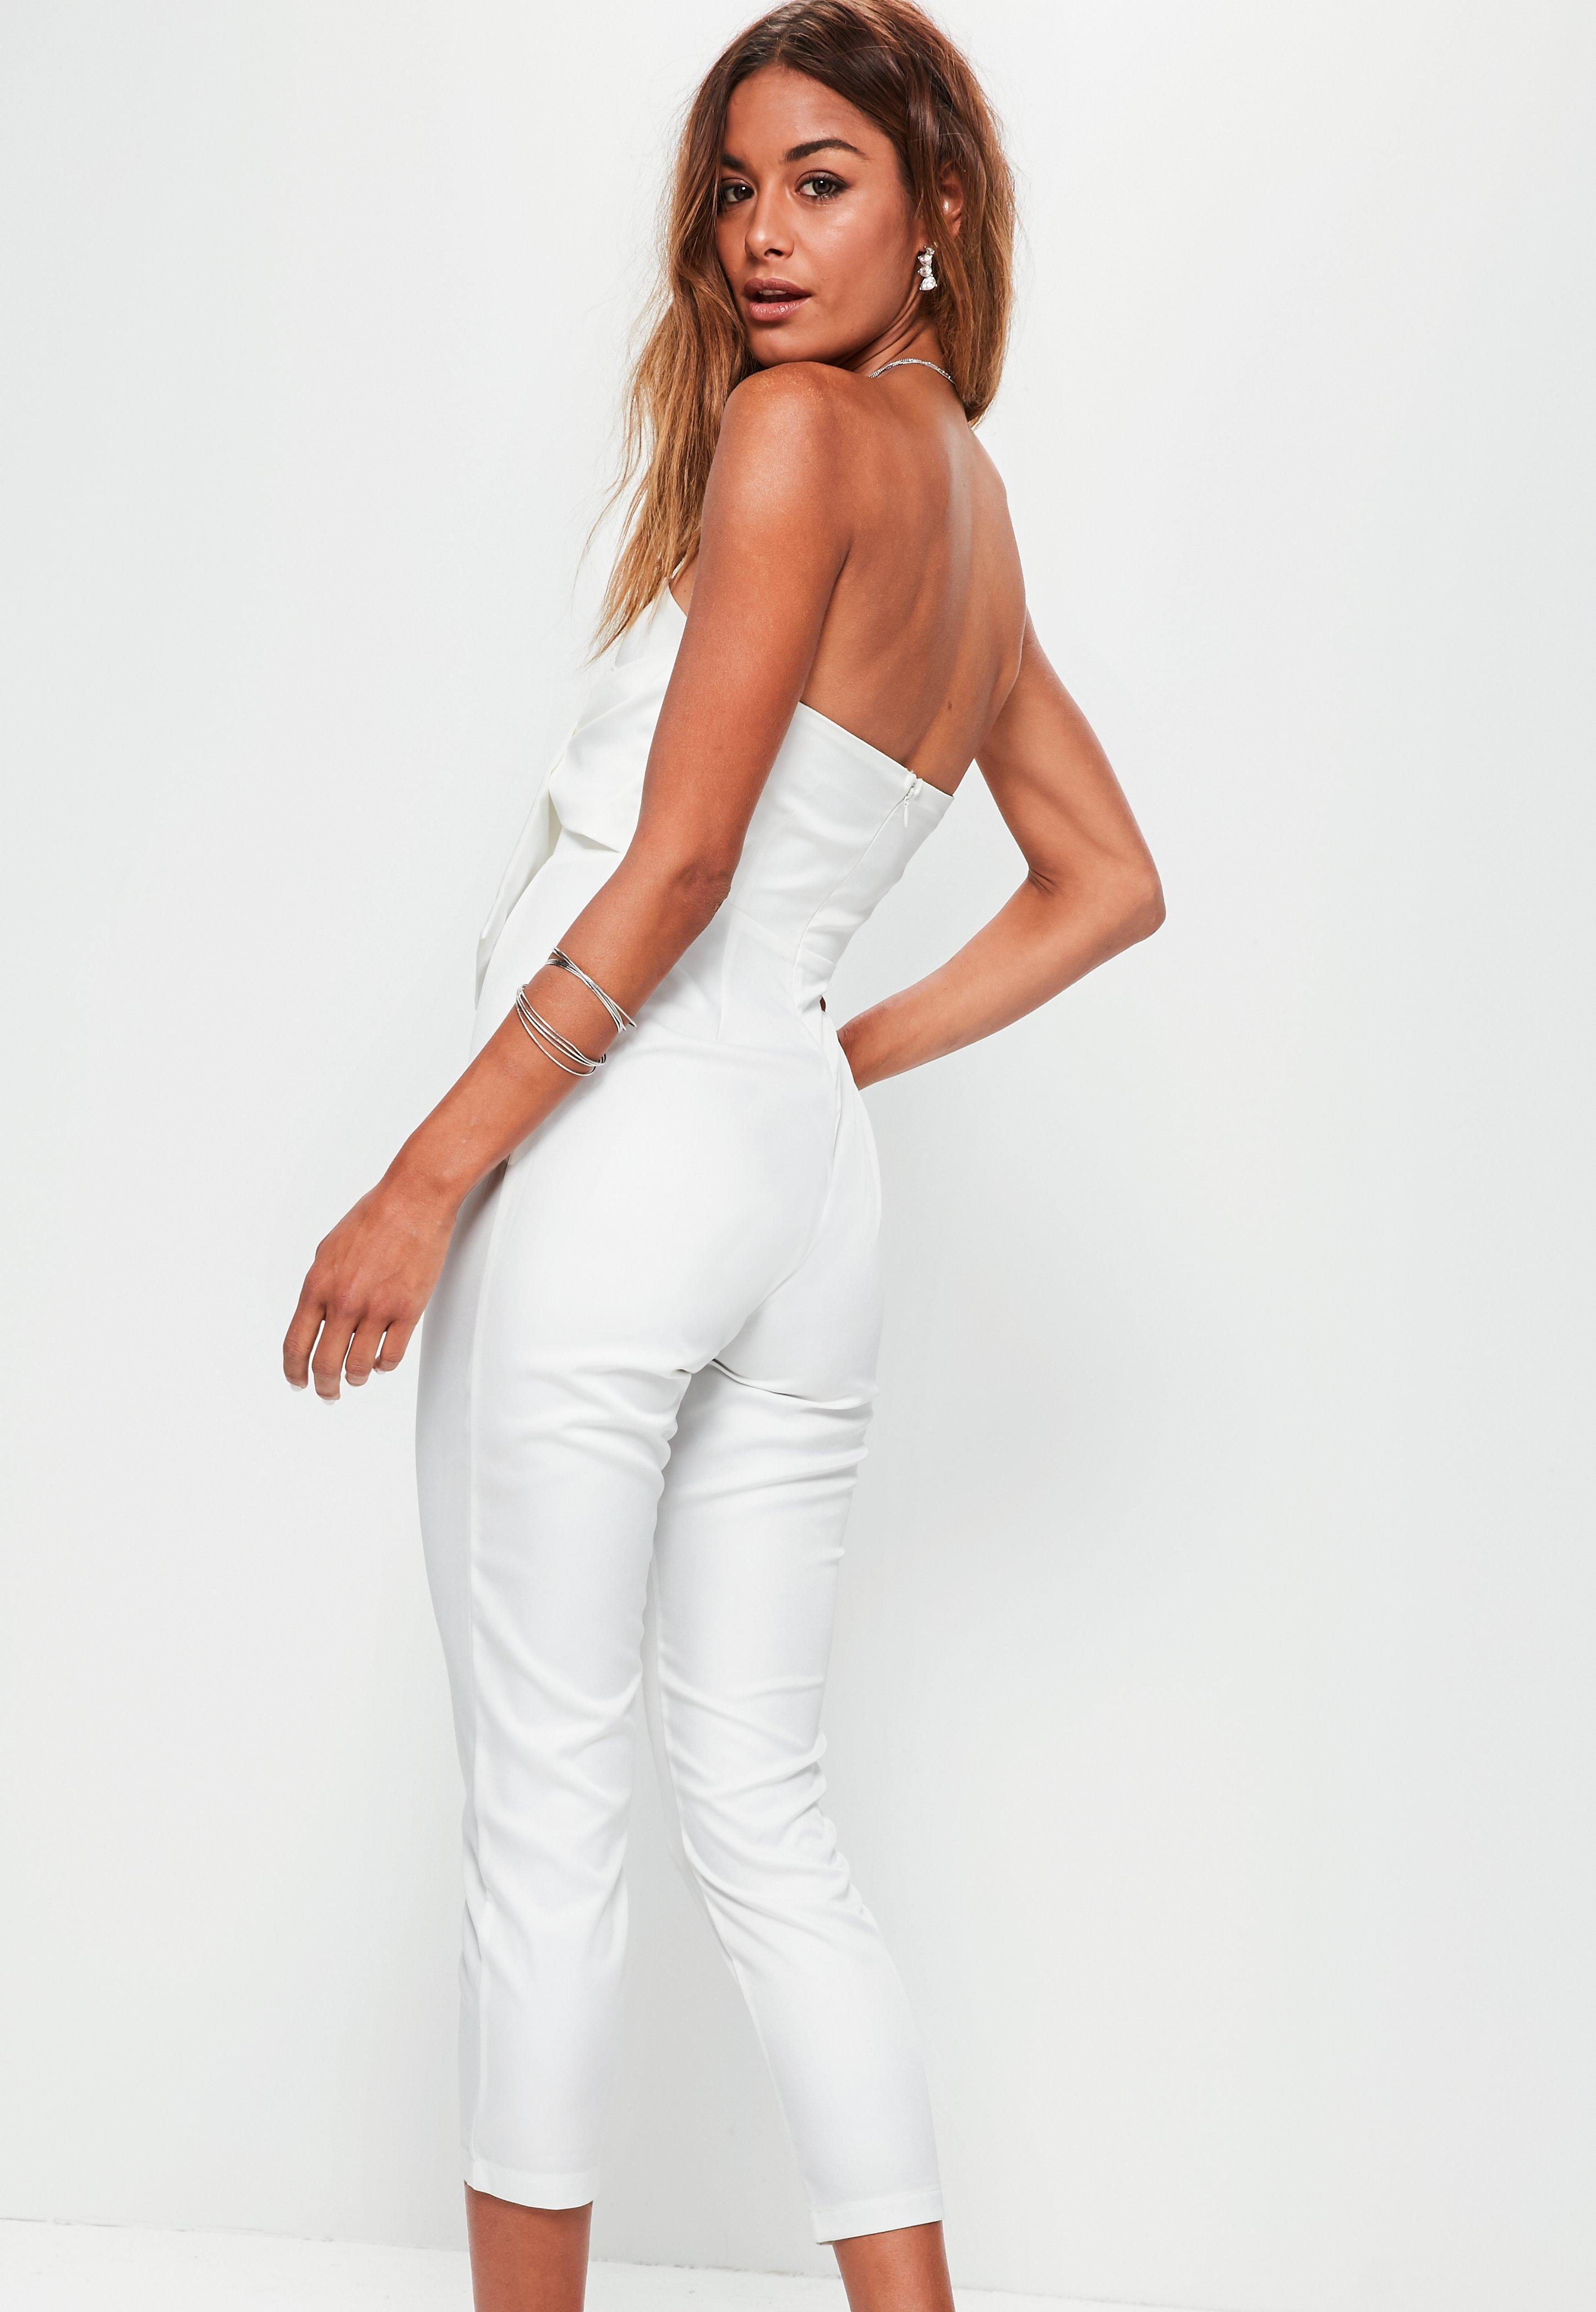 8cc5b7caf36 Lyst - Missguided Petite White Tie Front Bandeau Jumpsuit in White